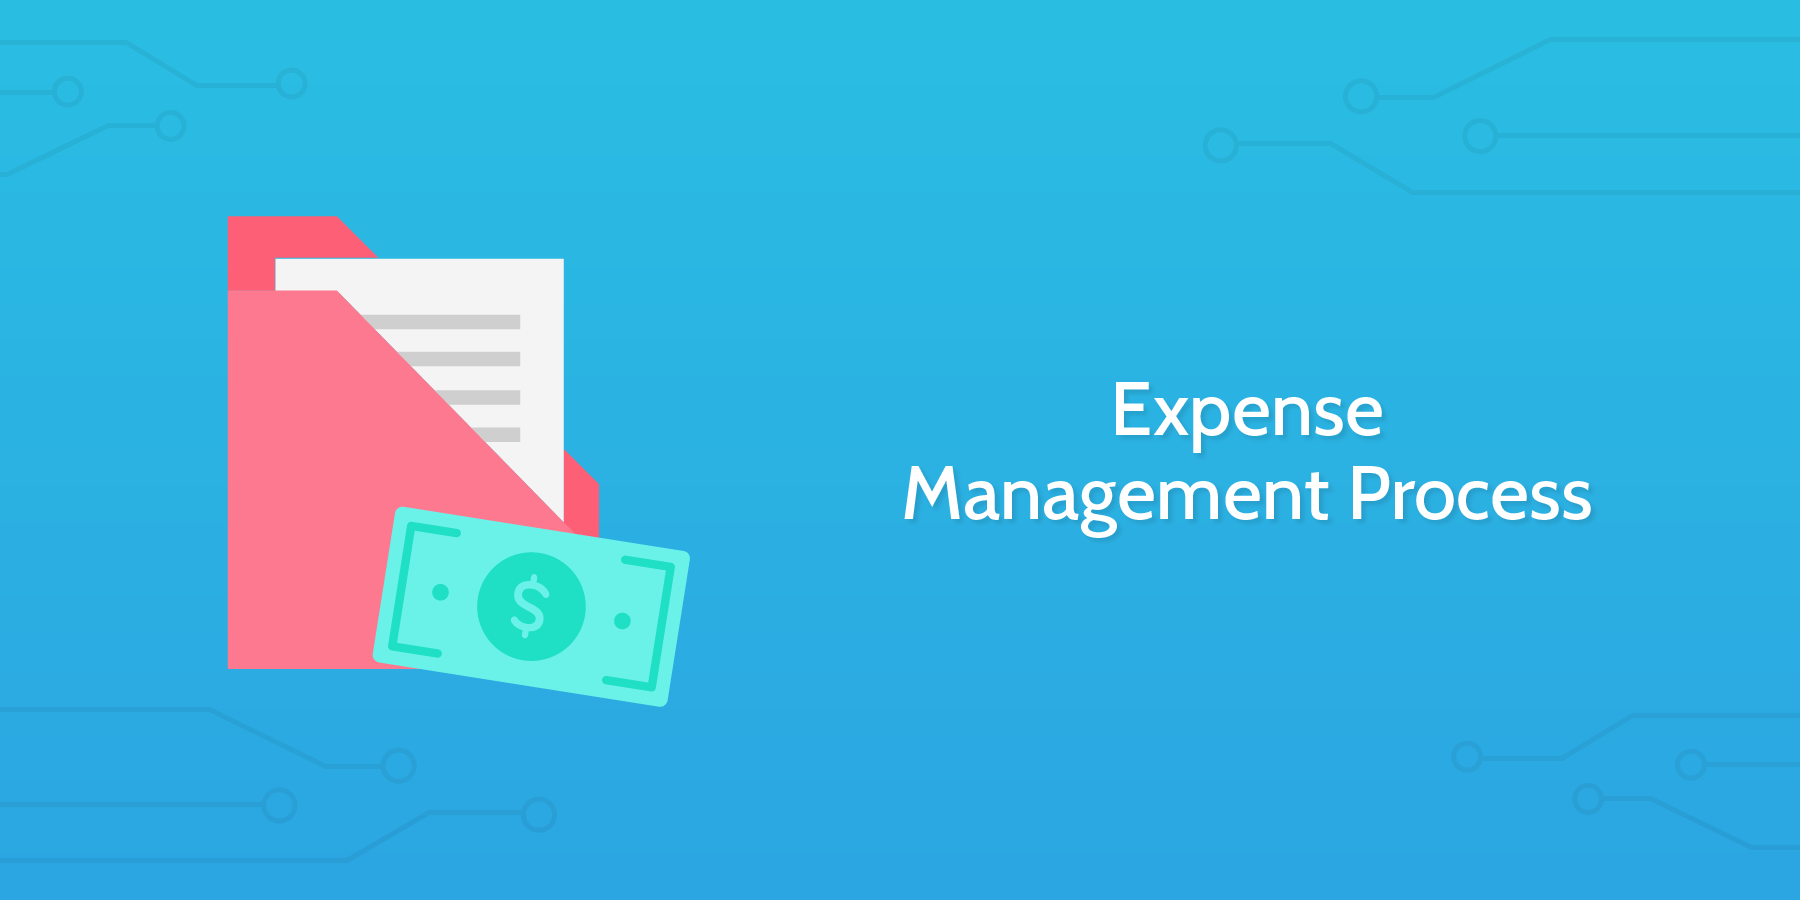 expense-management-process